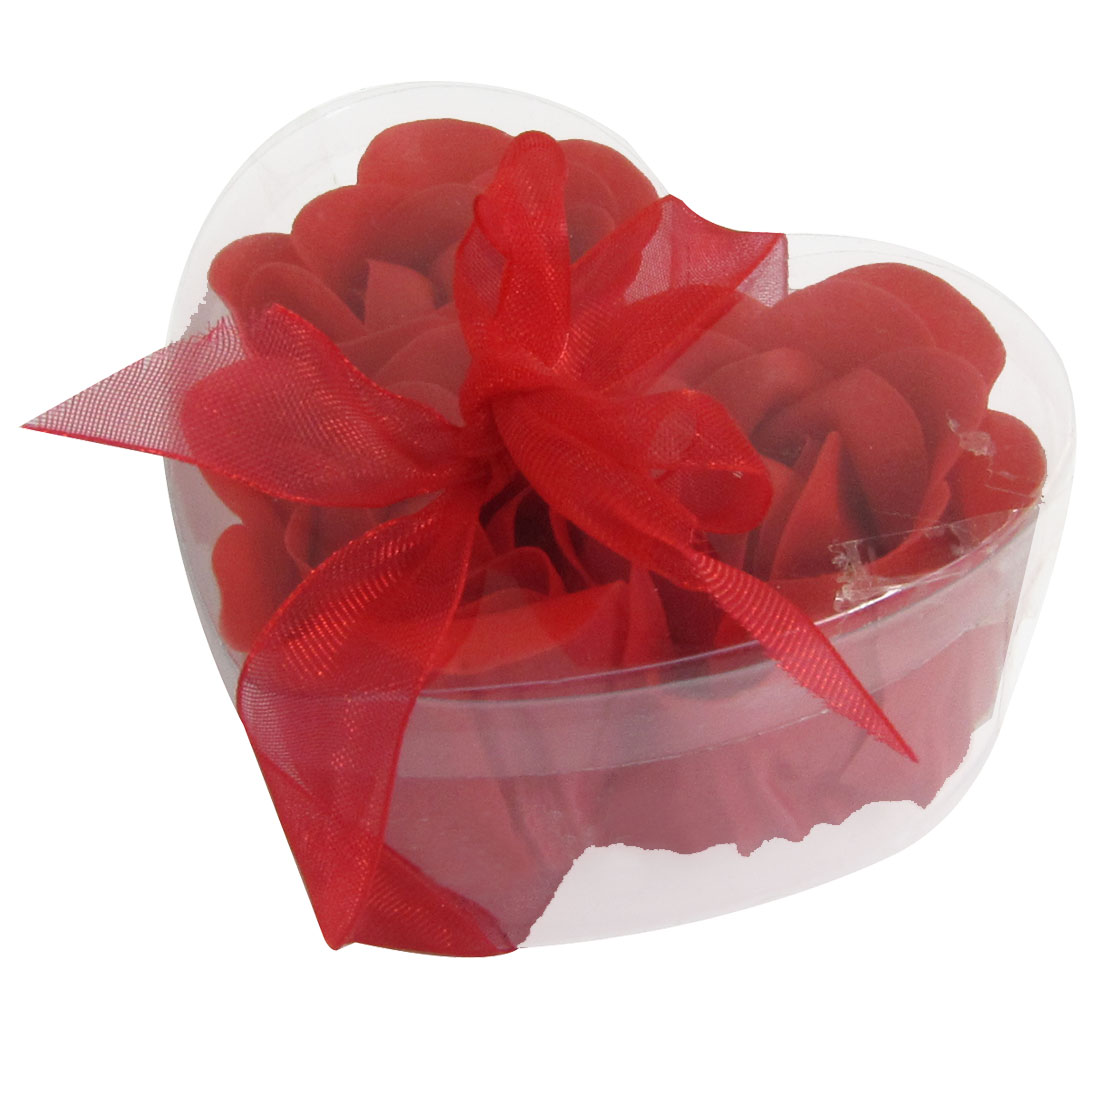 3 Pcs Plastic Heart Shape Box Tub Party Gift Bath Soap Flowers Petals